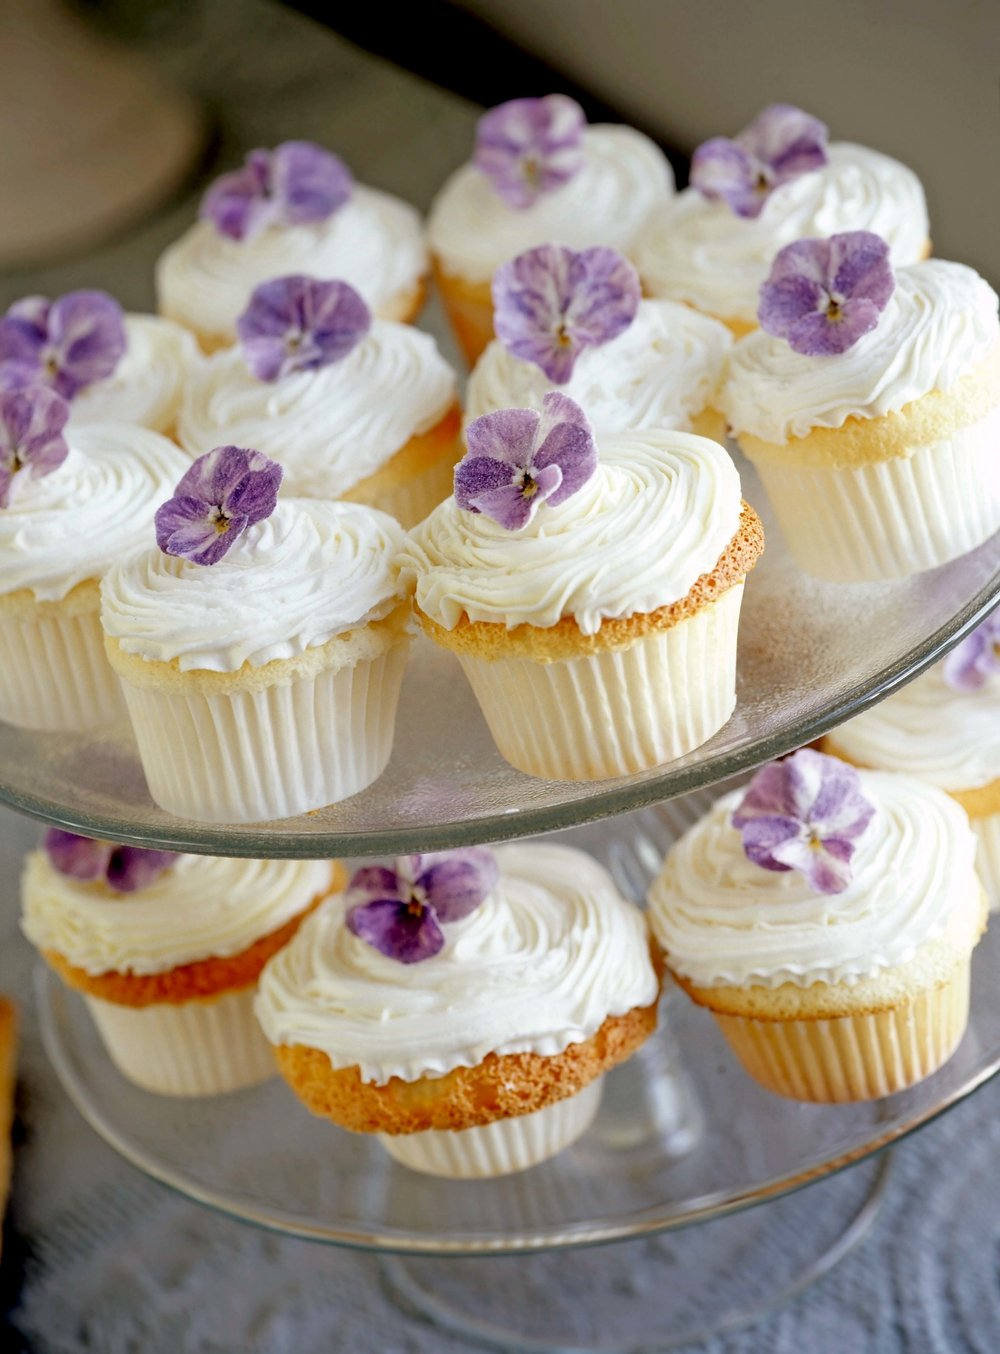 Sugared viola flowers add a delicate touch to this cupcake recipe. From the April 2018 issue of LandScape